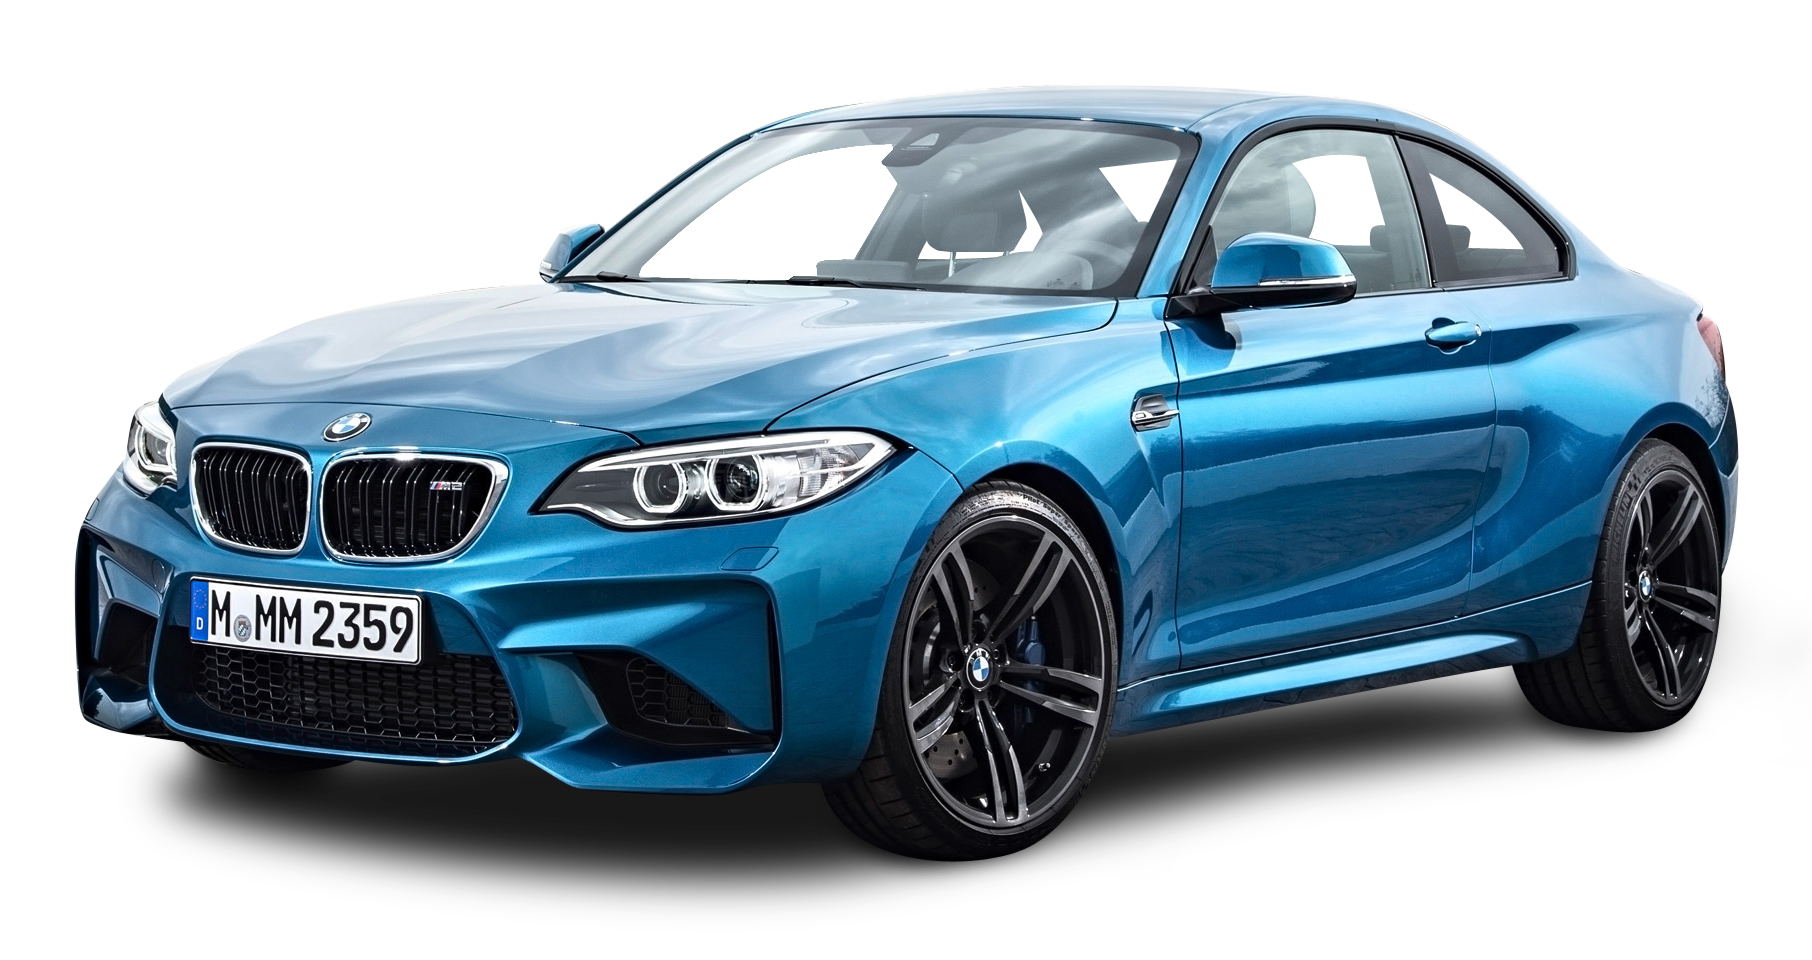 Blue Bmw M2 Coupe Car Png Image Bmw Coupe Cars Bmw M2